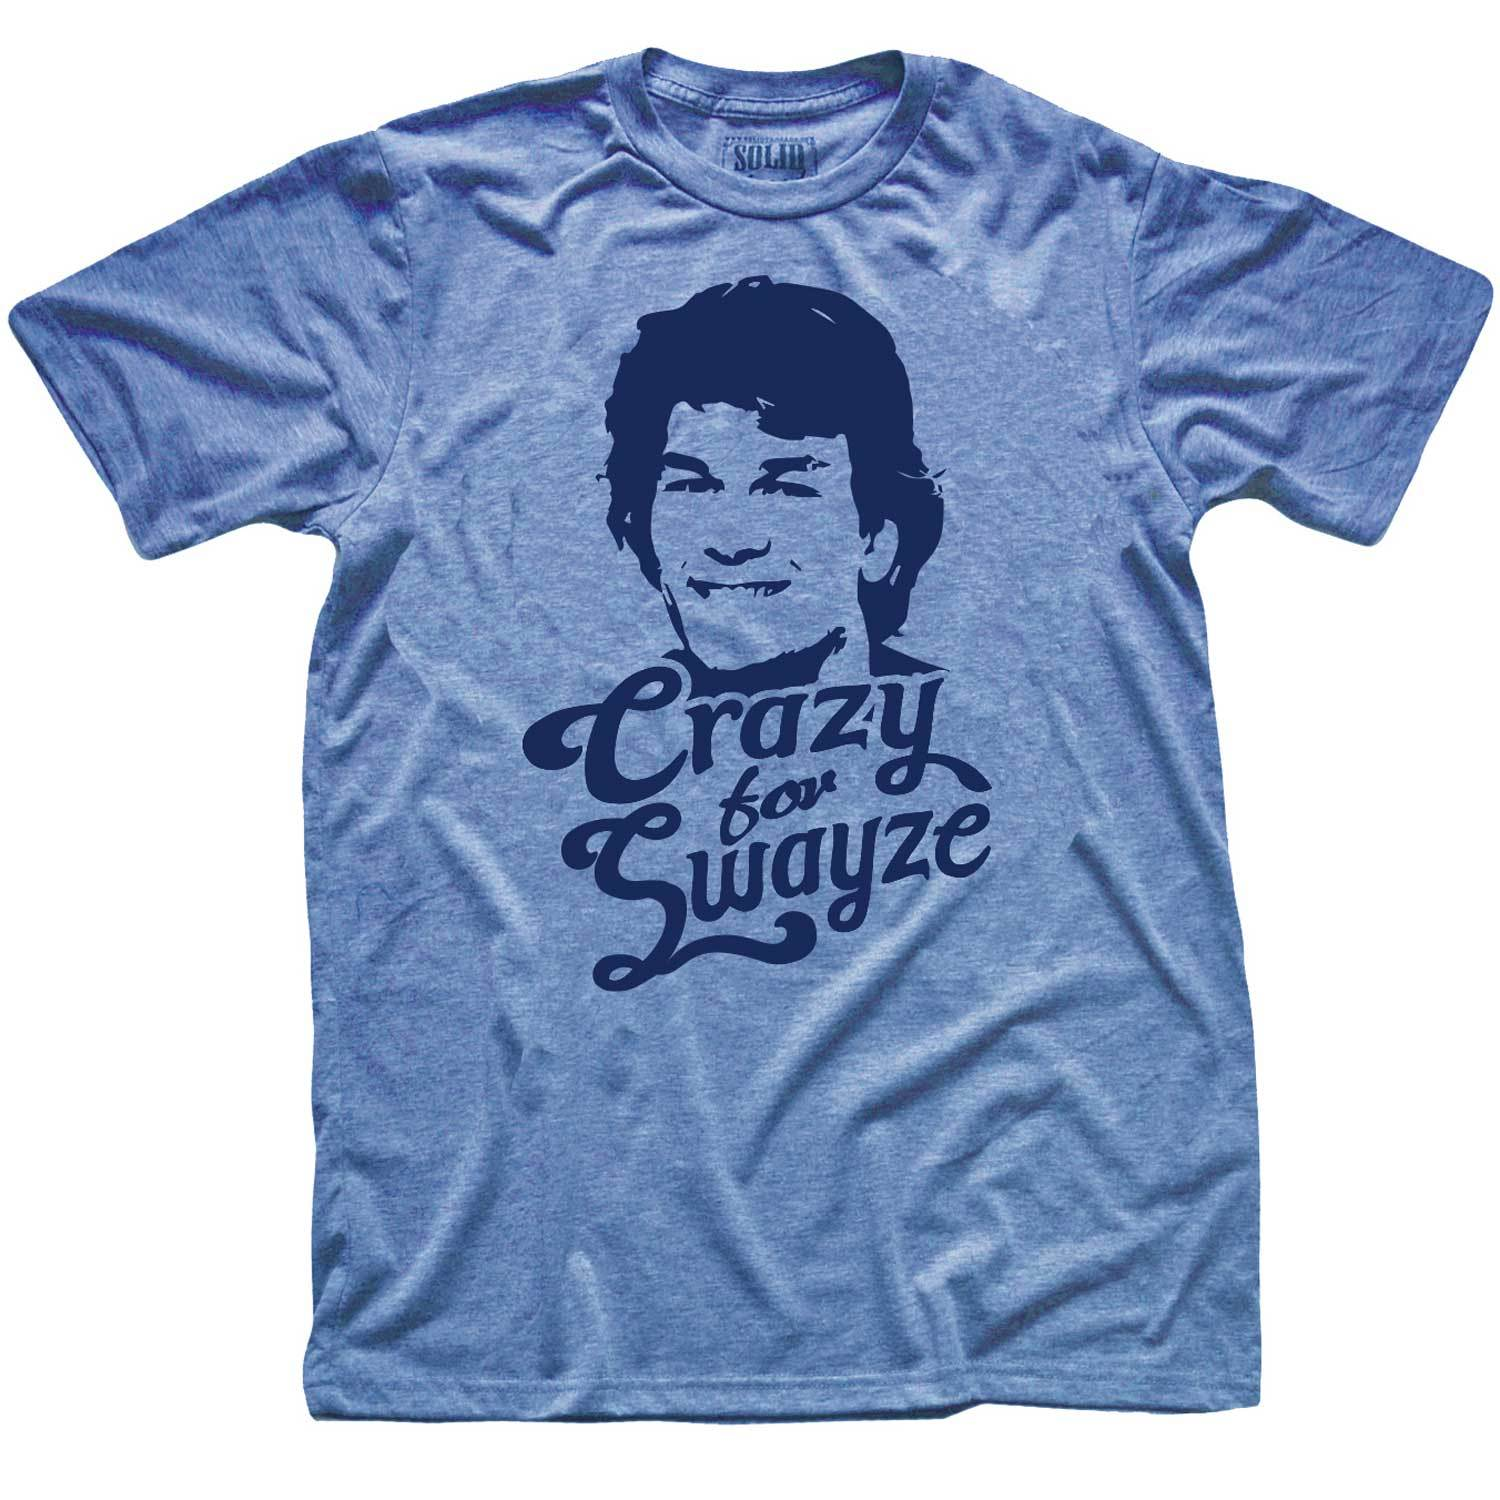 Crazy For Swayze T-shirt | Supports World Health